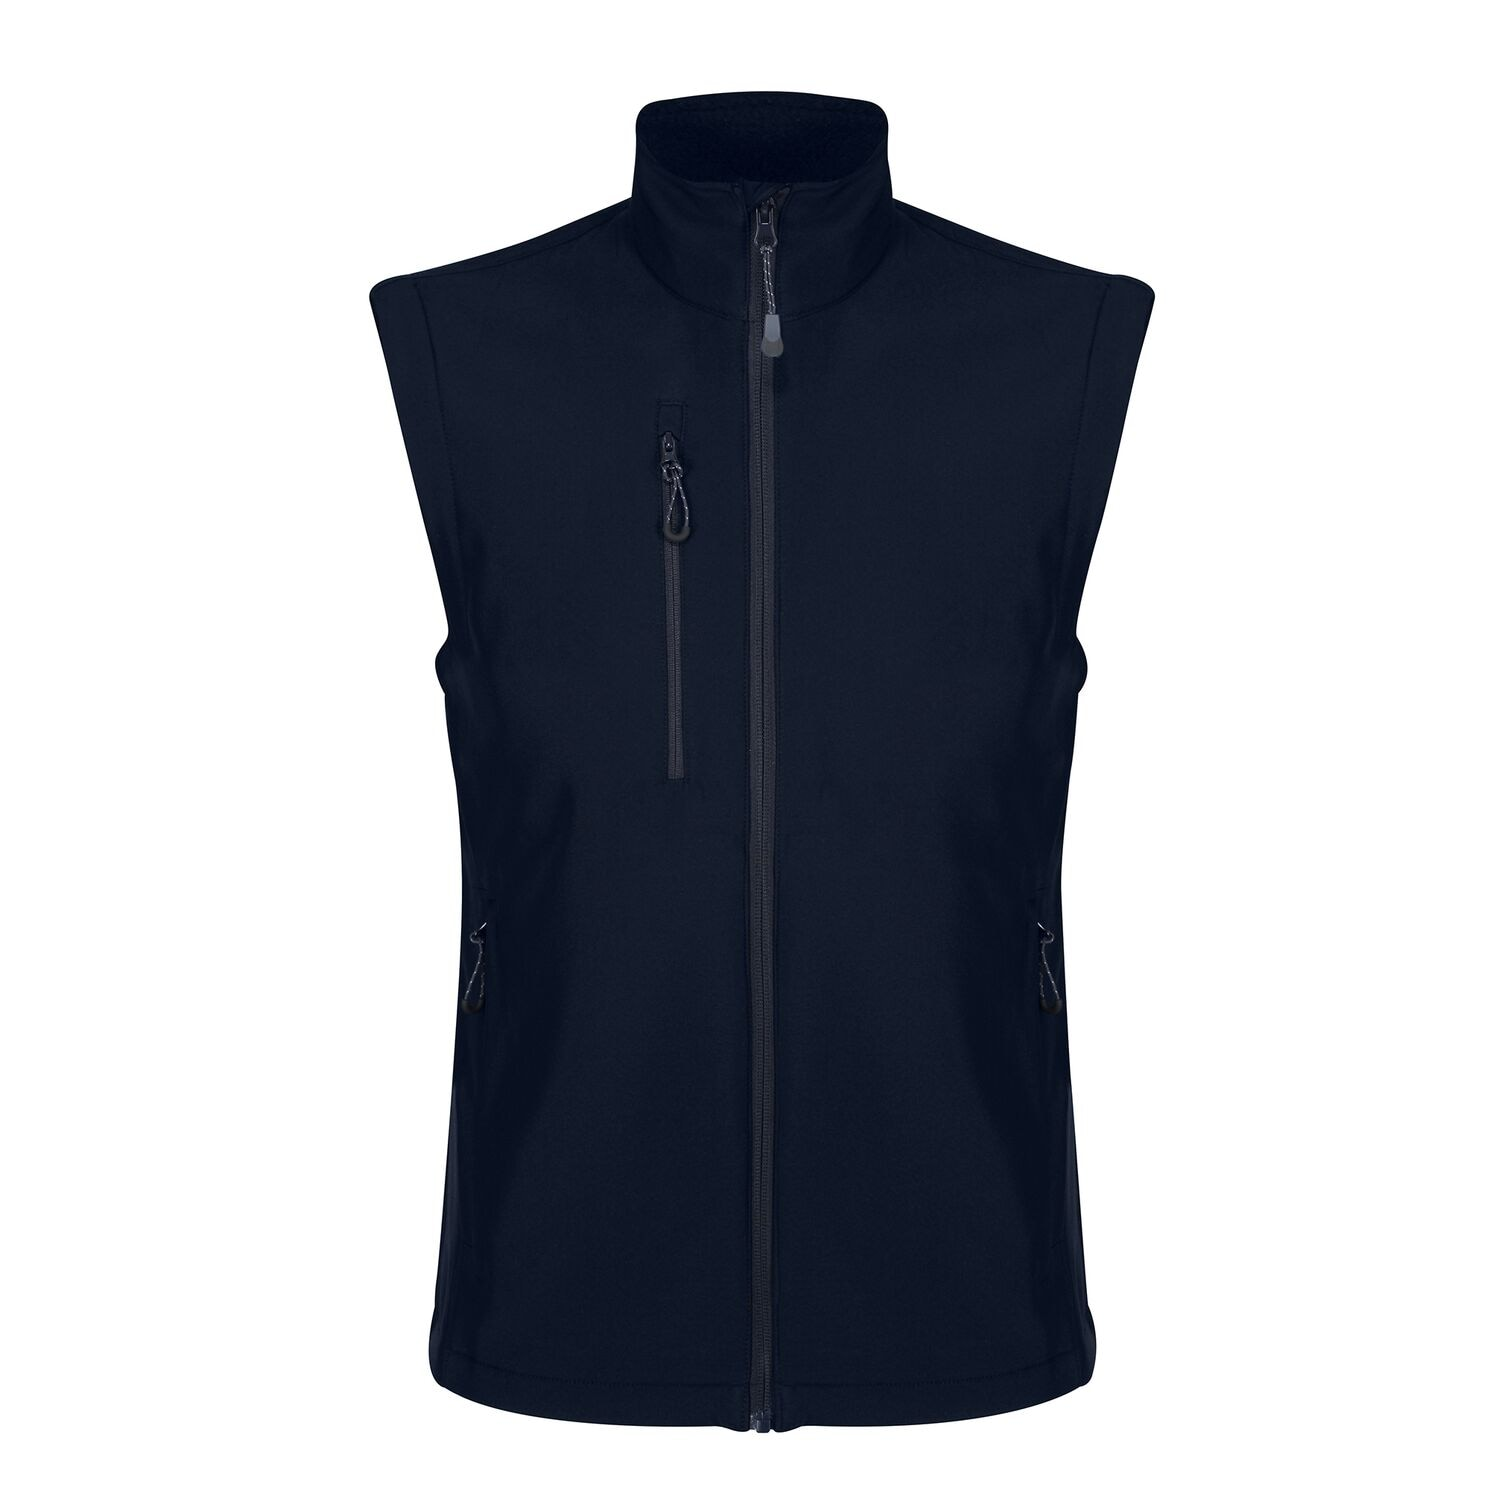 Regatta Softshellweste »Herren Honestly Made Recycle Softshell Bodywarmer« von Regatta